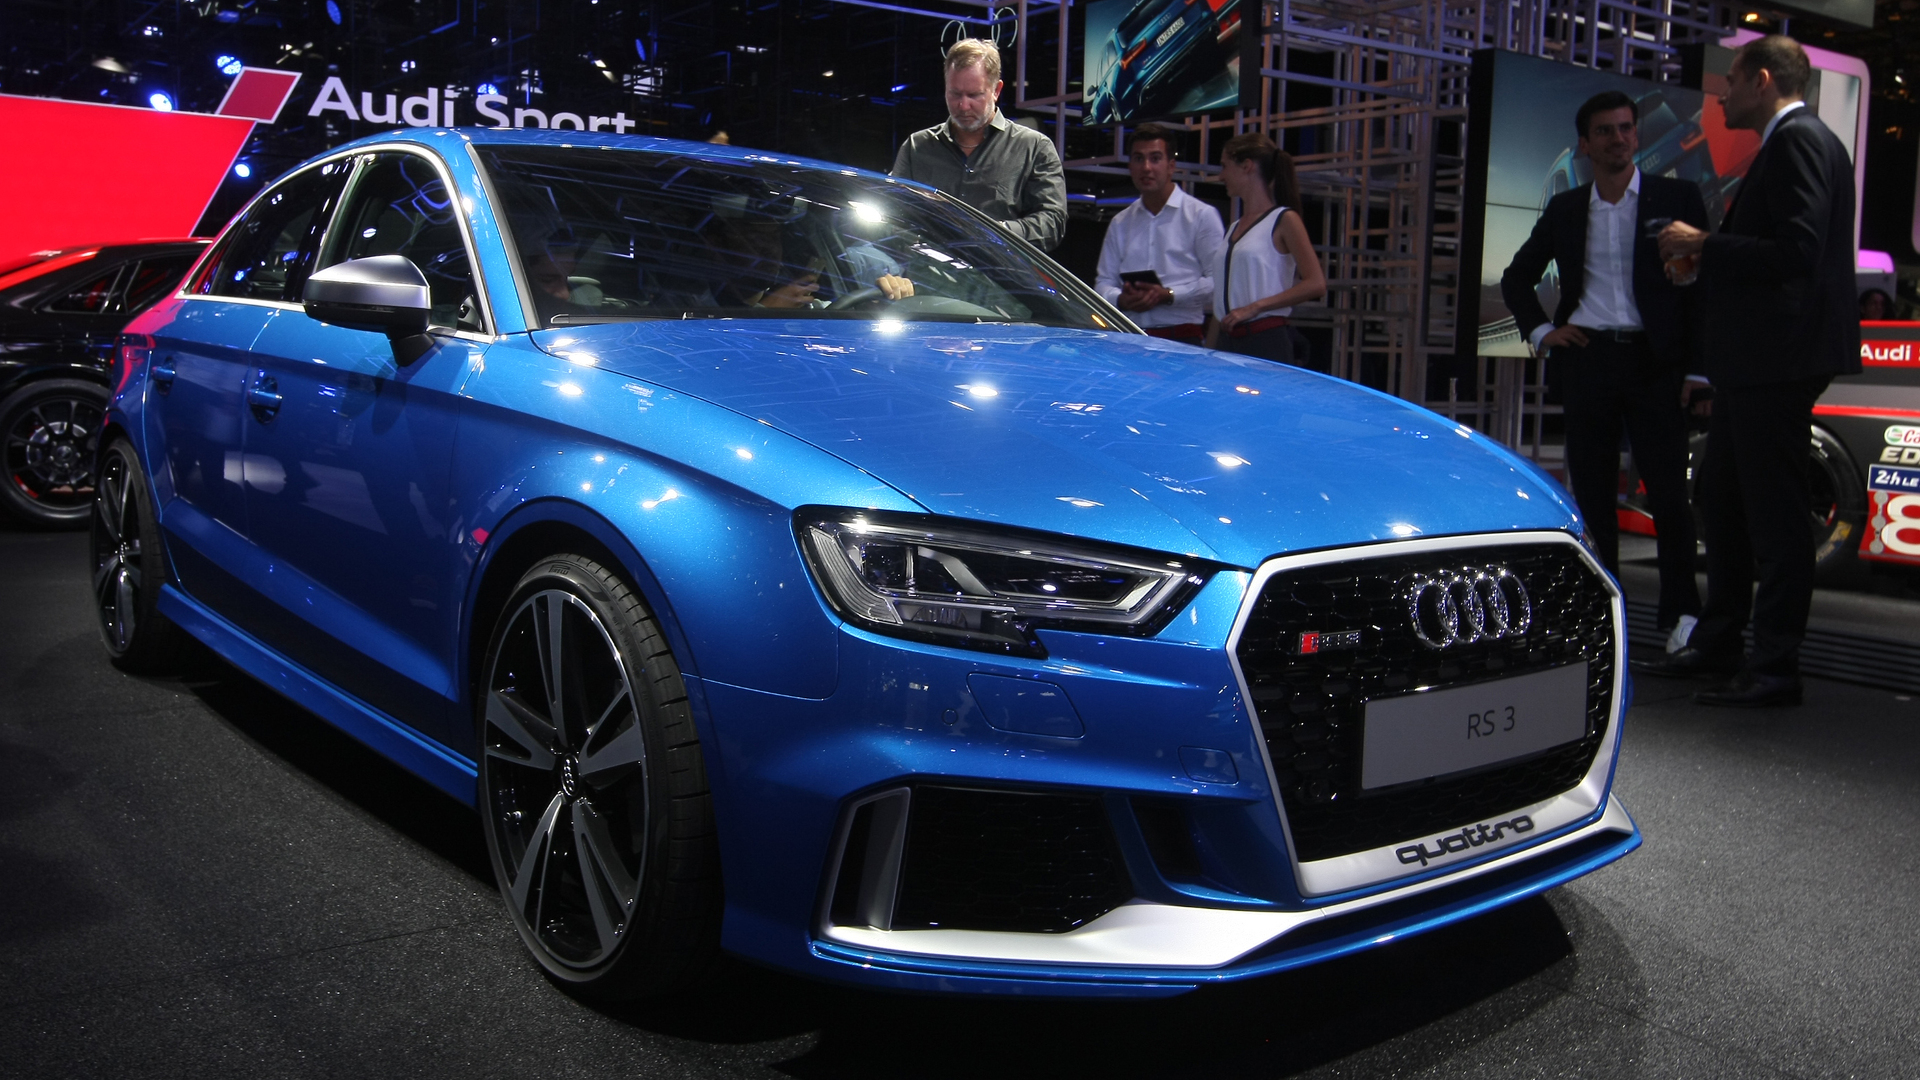 Audi Rs3 Sedan With 400 Hp Debuts In Paris Arrives In U S Next Summer